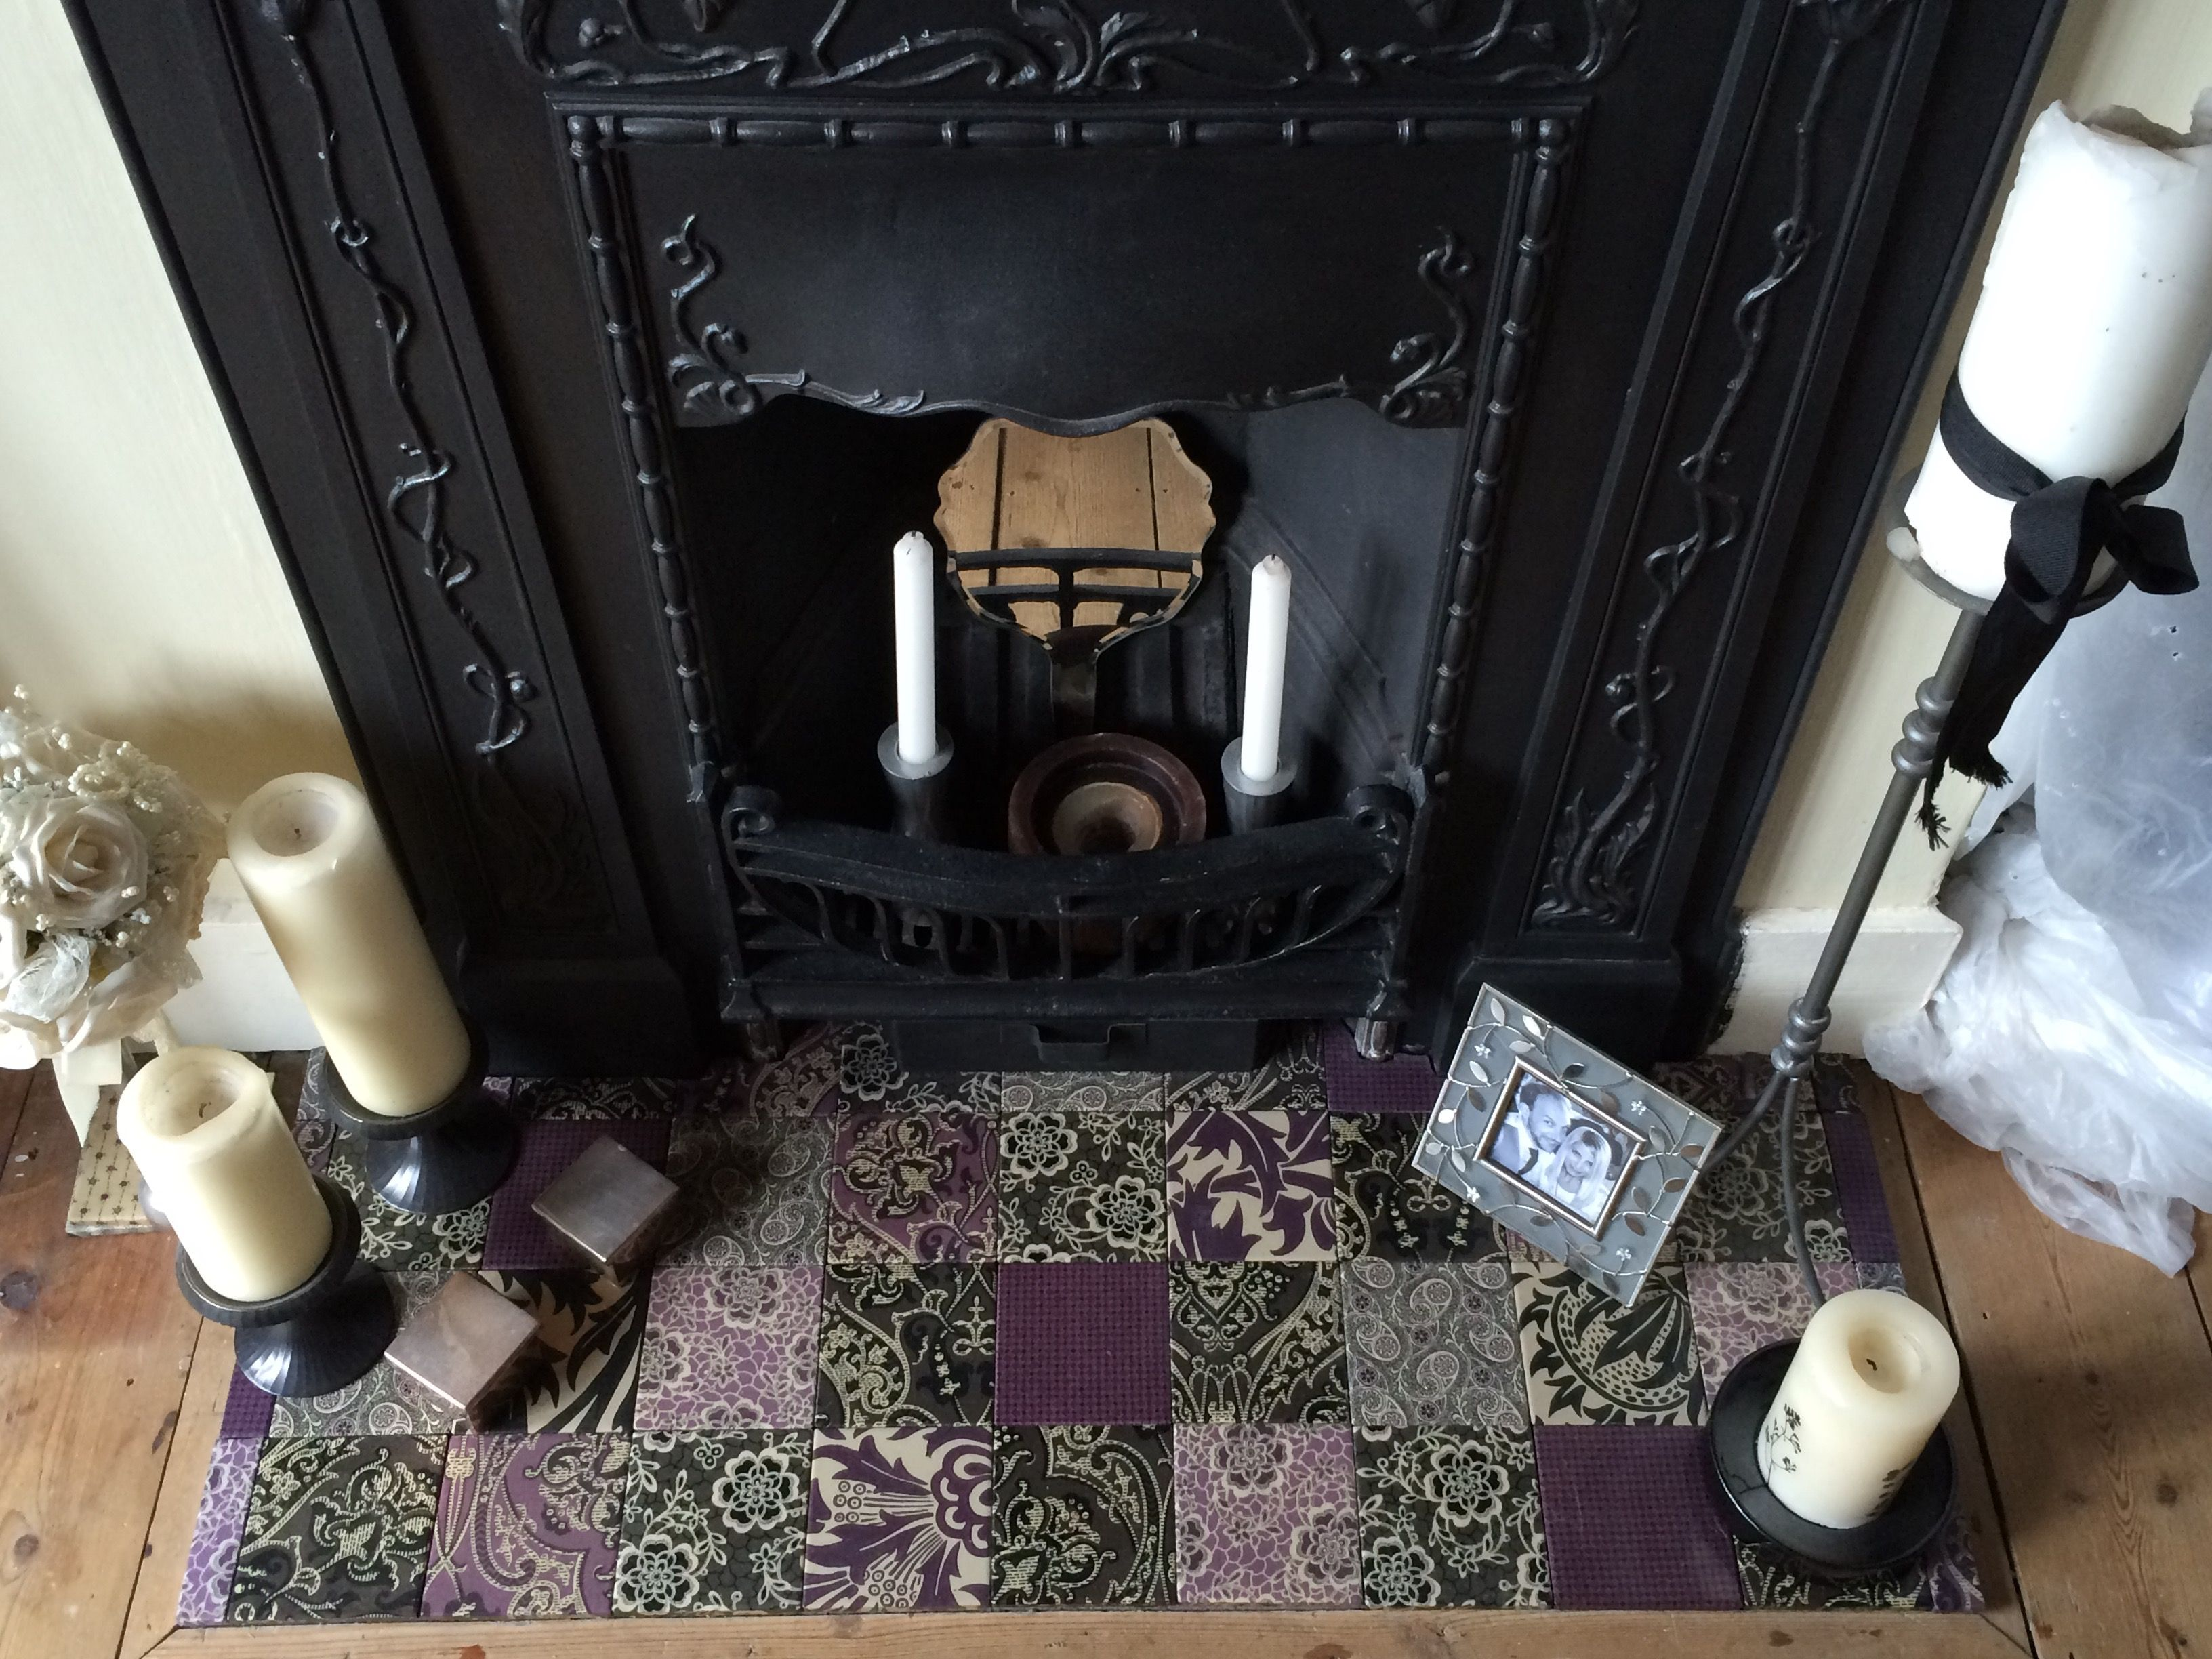 original cast iron bedroom fireplace with homemade decoupage tiles